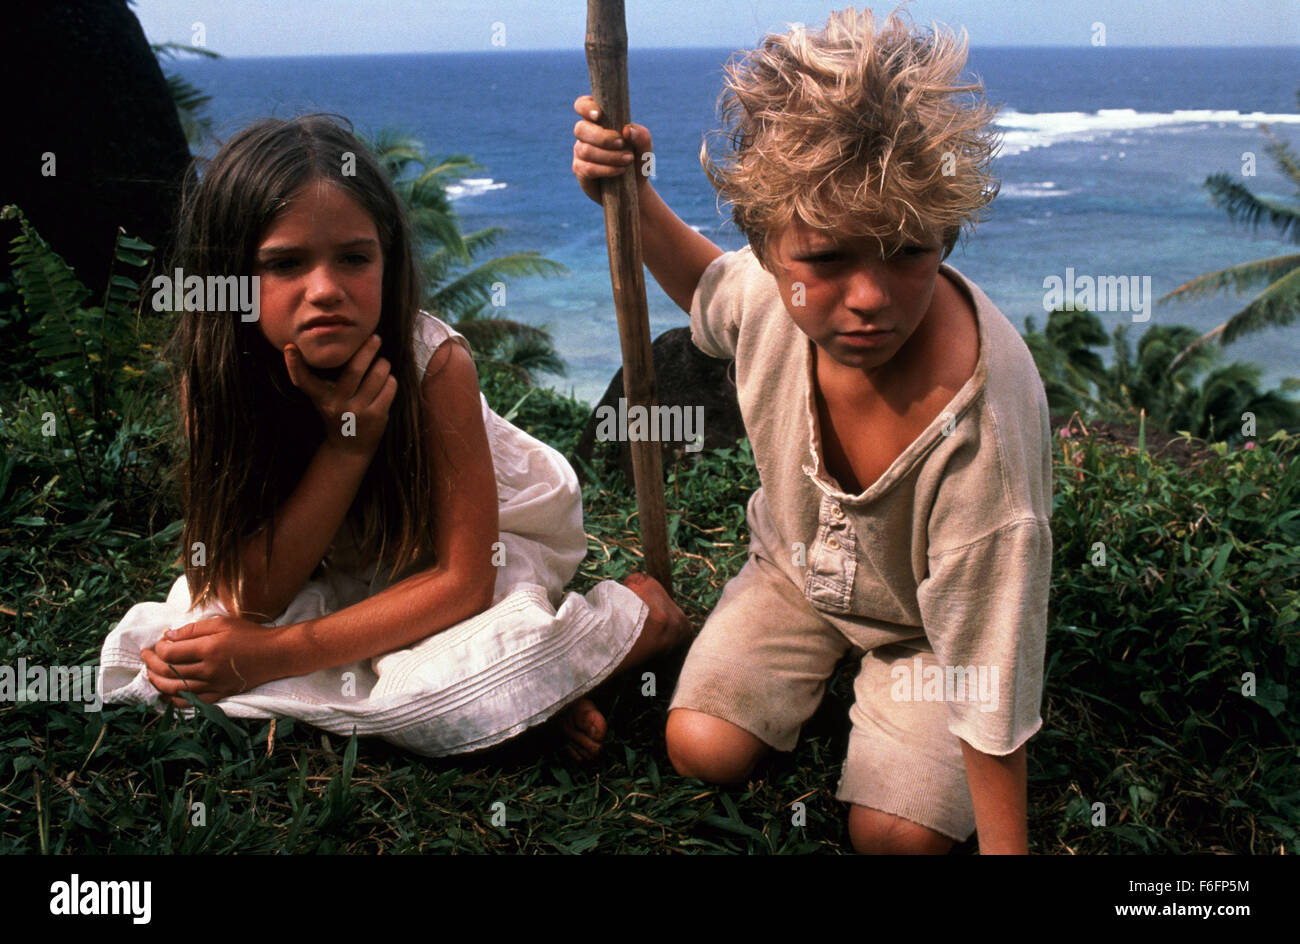 desert island dating Desert island dating log in not a member sign up username: password:  contact website website by optimo information technology llc x contact.